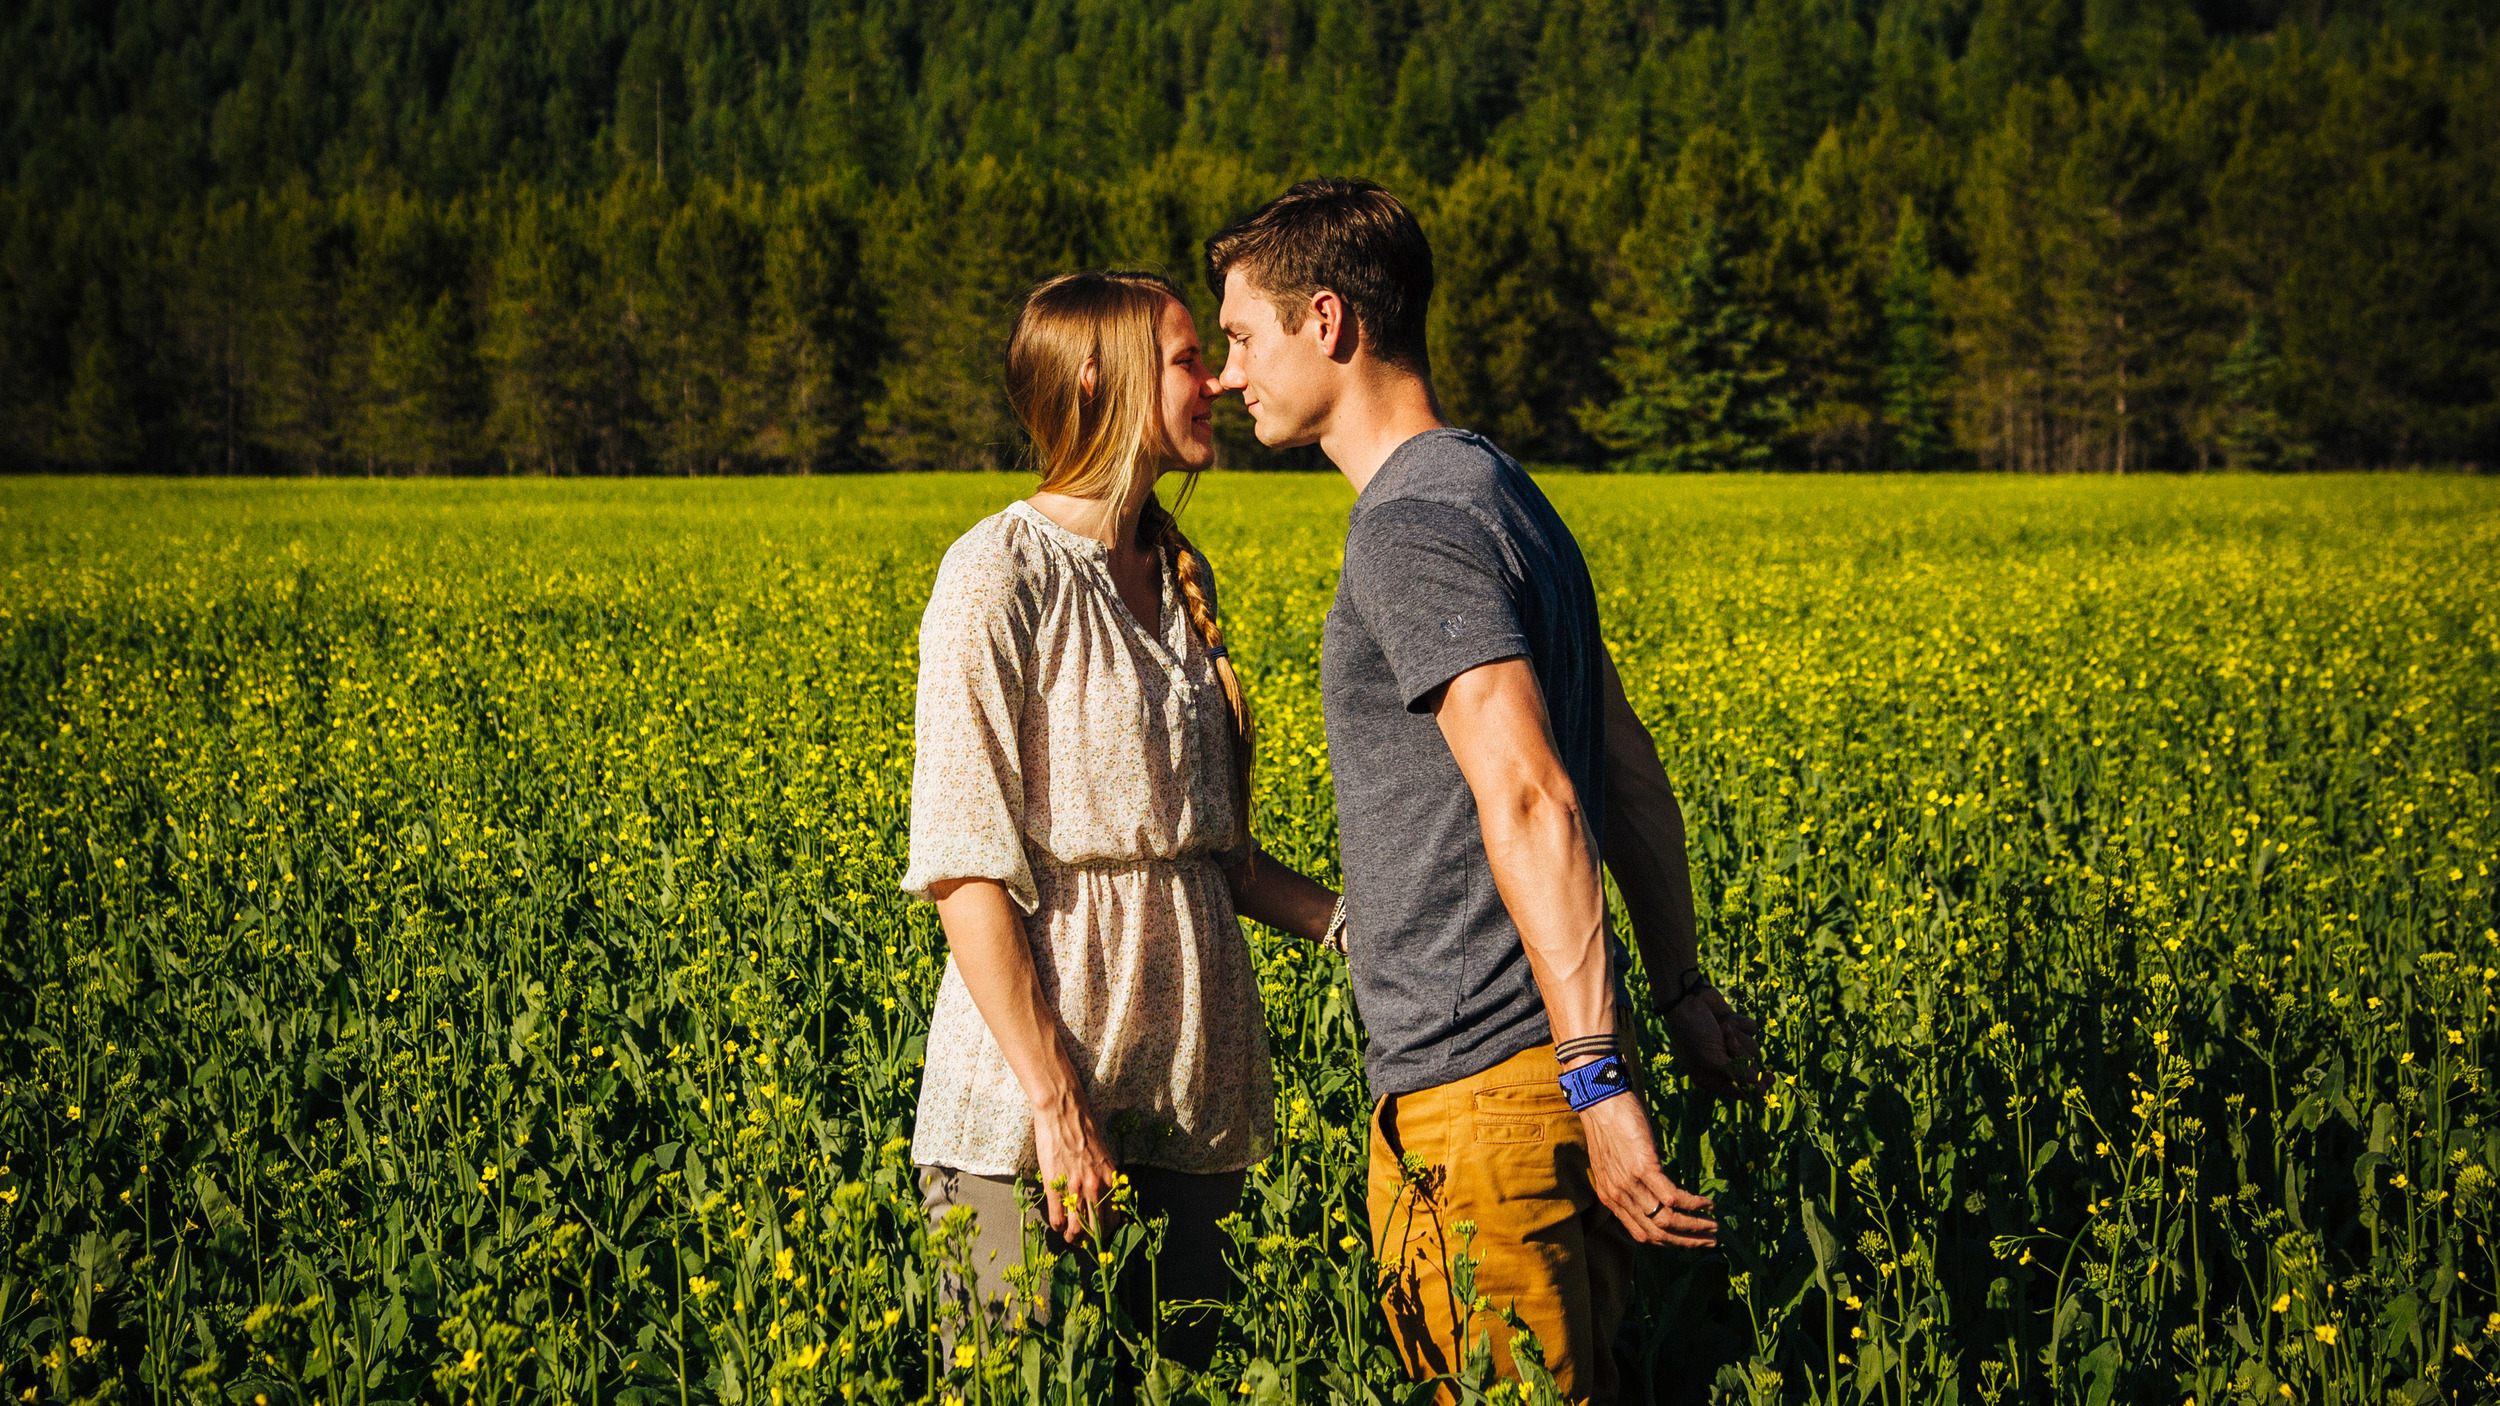 Engagement Photography. Couple in a field of Canola flowers